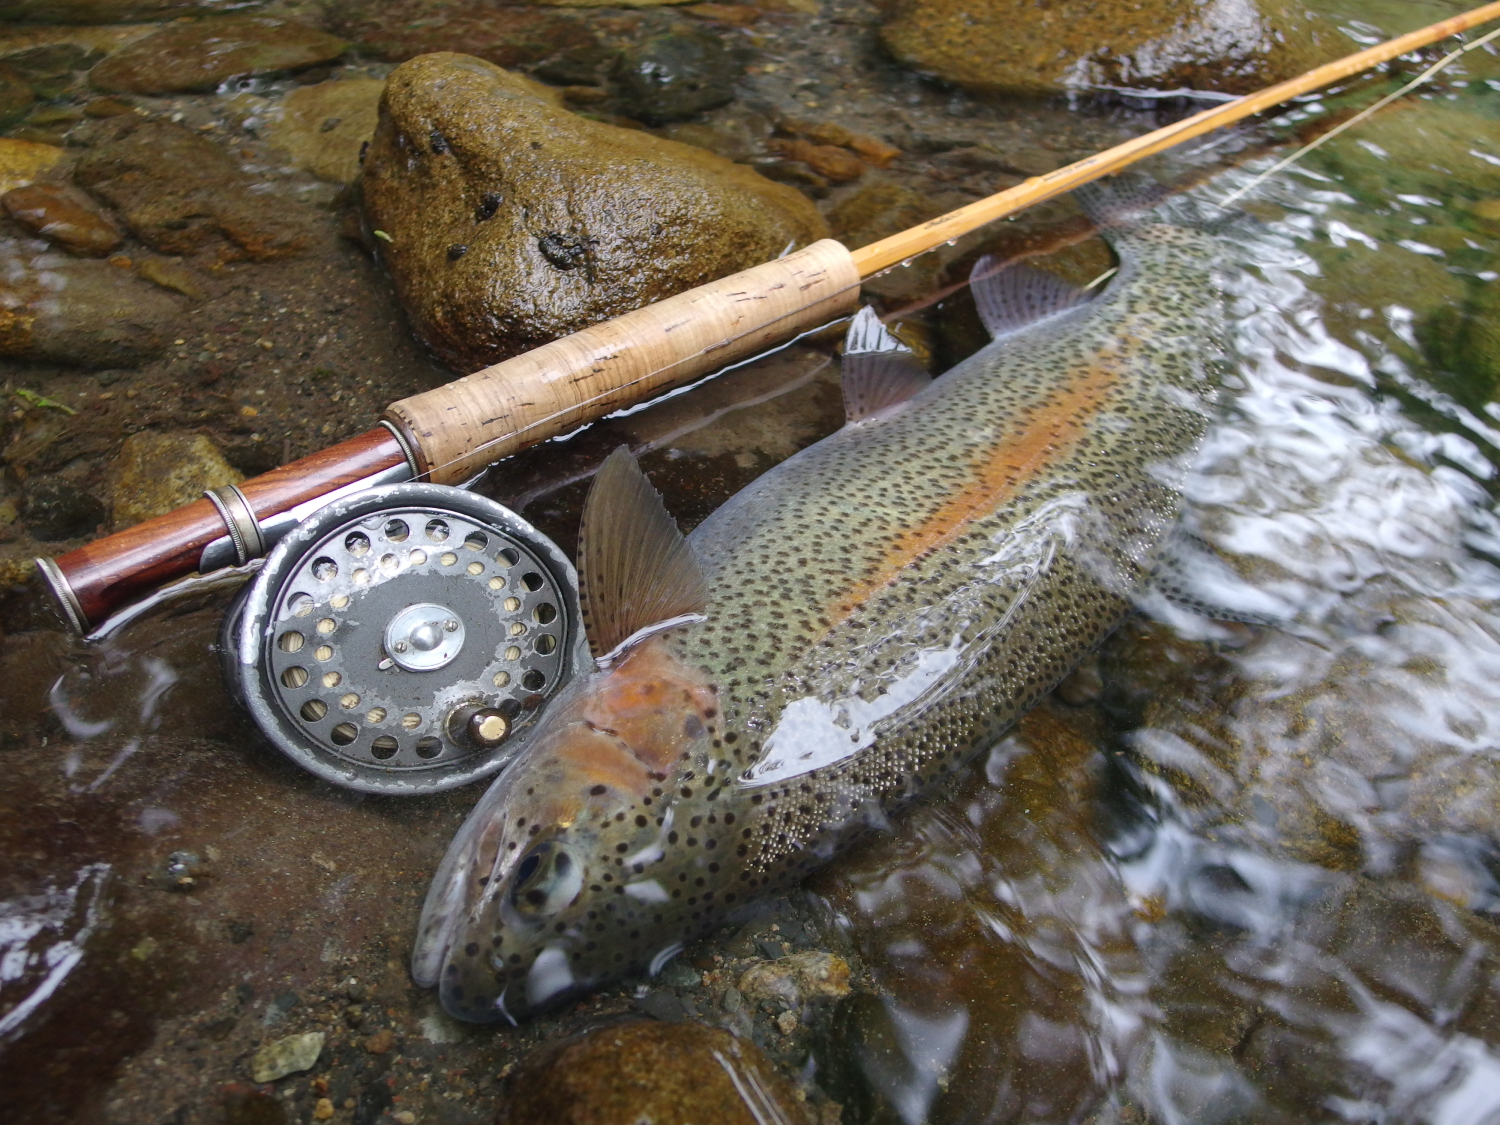 05:49 pm Northern Hokkaido, Japan / Water temperature: 11℃ / Hatch: caddis/ Fly: CDC caddis #12